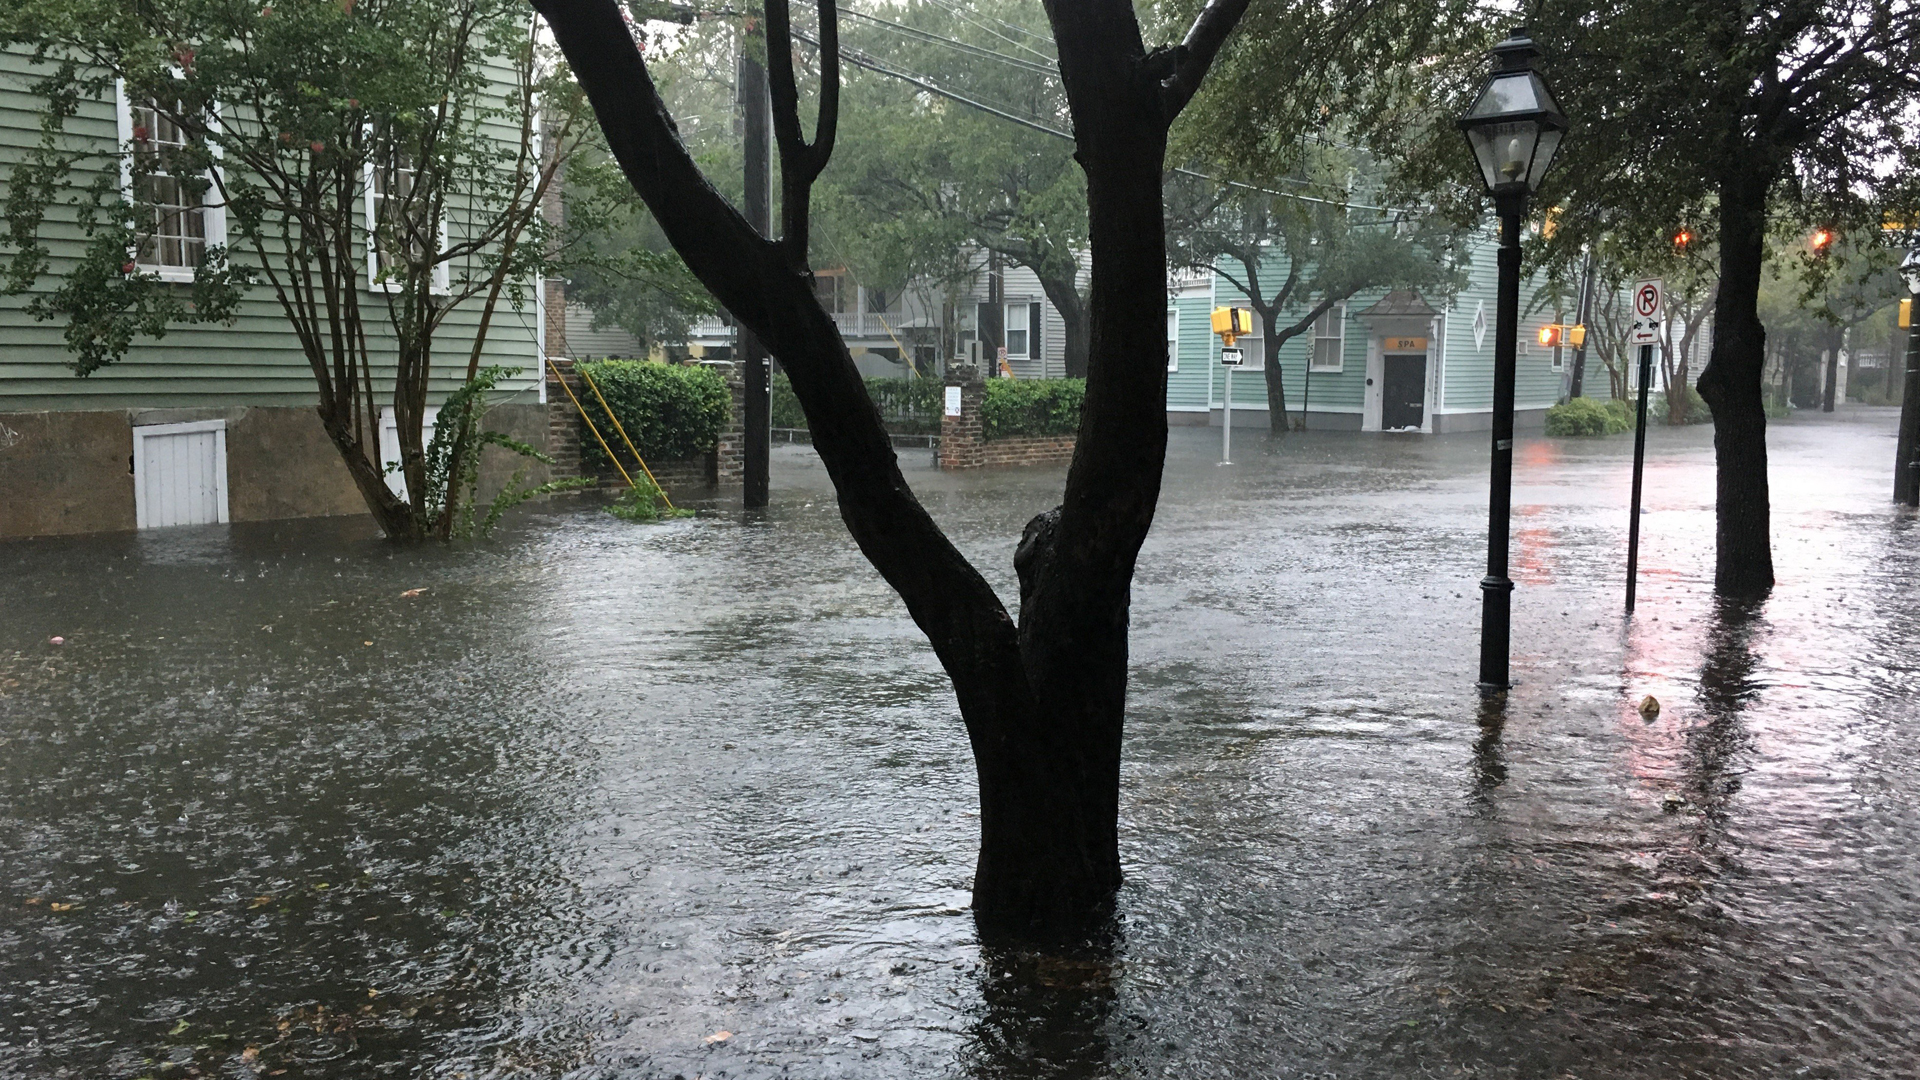 Irma has caused streets to flood in downtown Charleston, South Carolina. (Credit: Elly Craver via CNN)